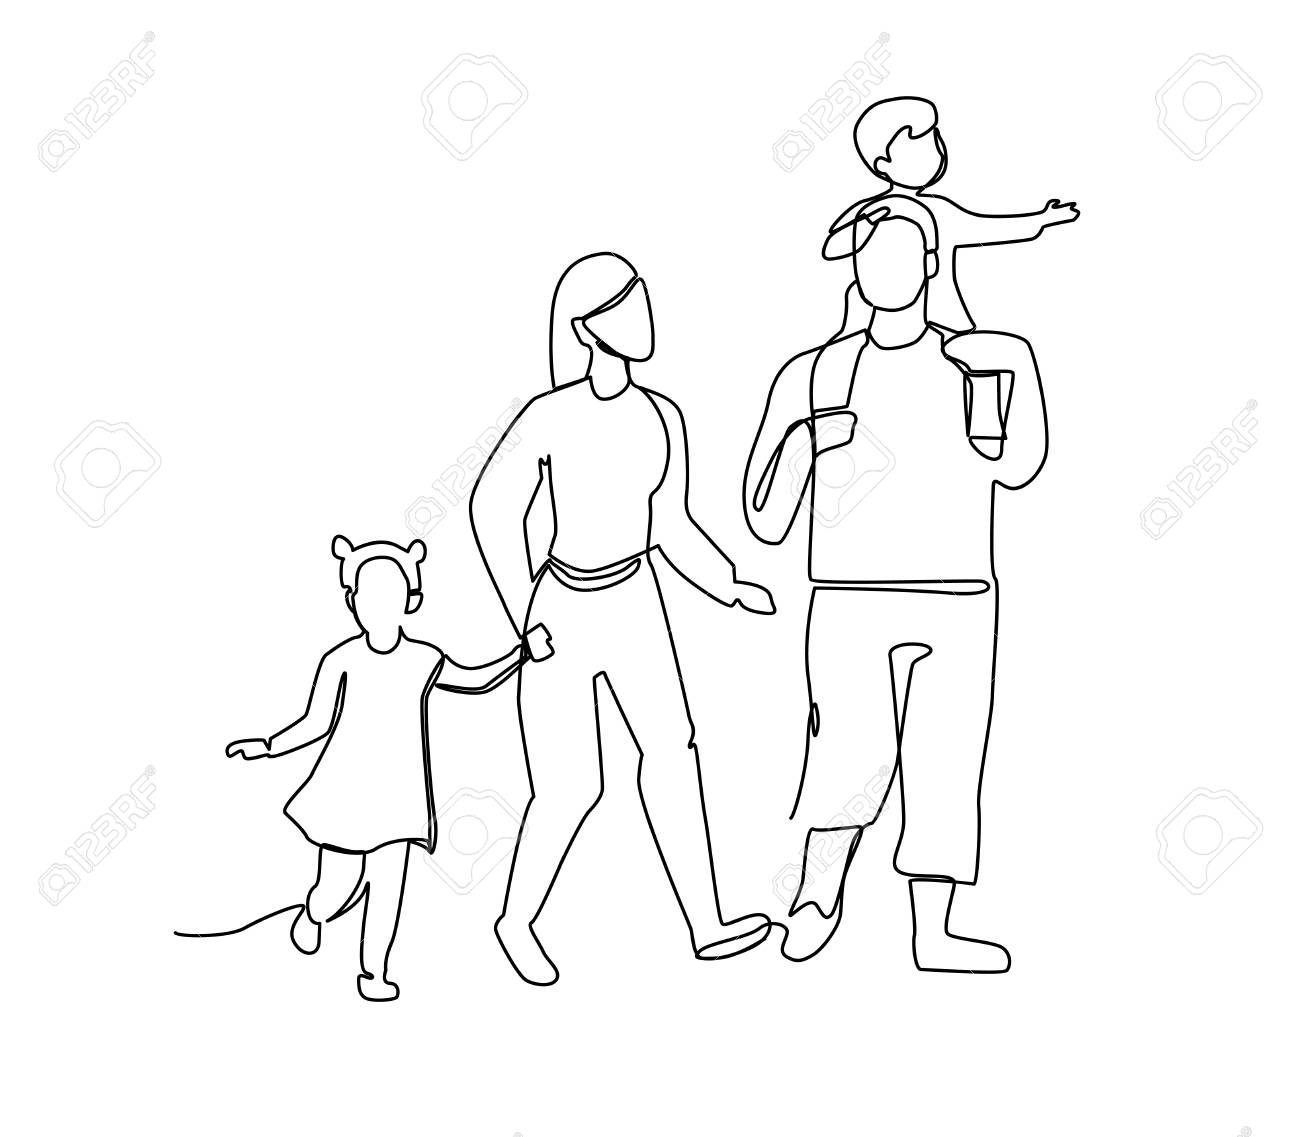 Continuous Line Parents Walking with Children. One Line Happy Family. Contour People Outdoor. Parenting Characters. - 105037413